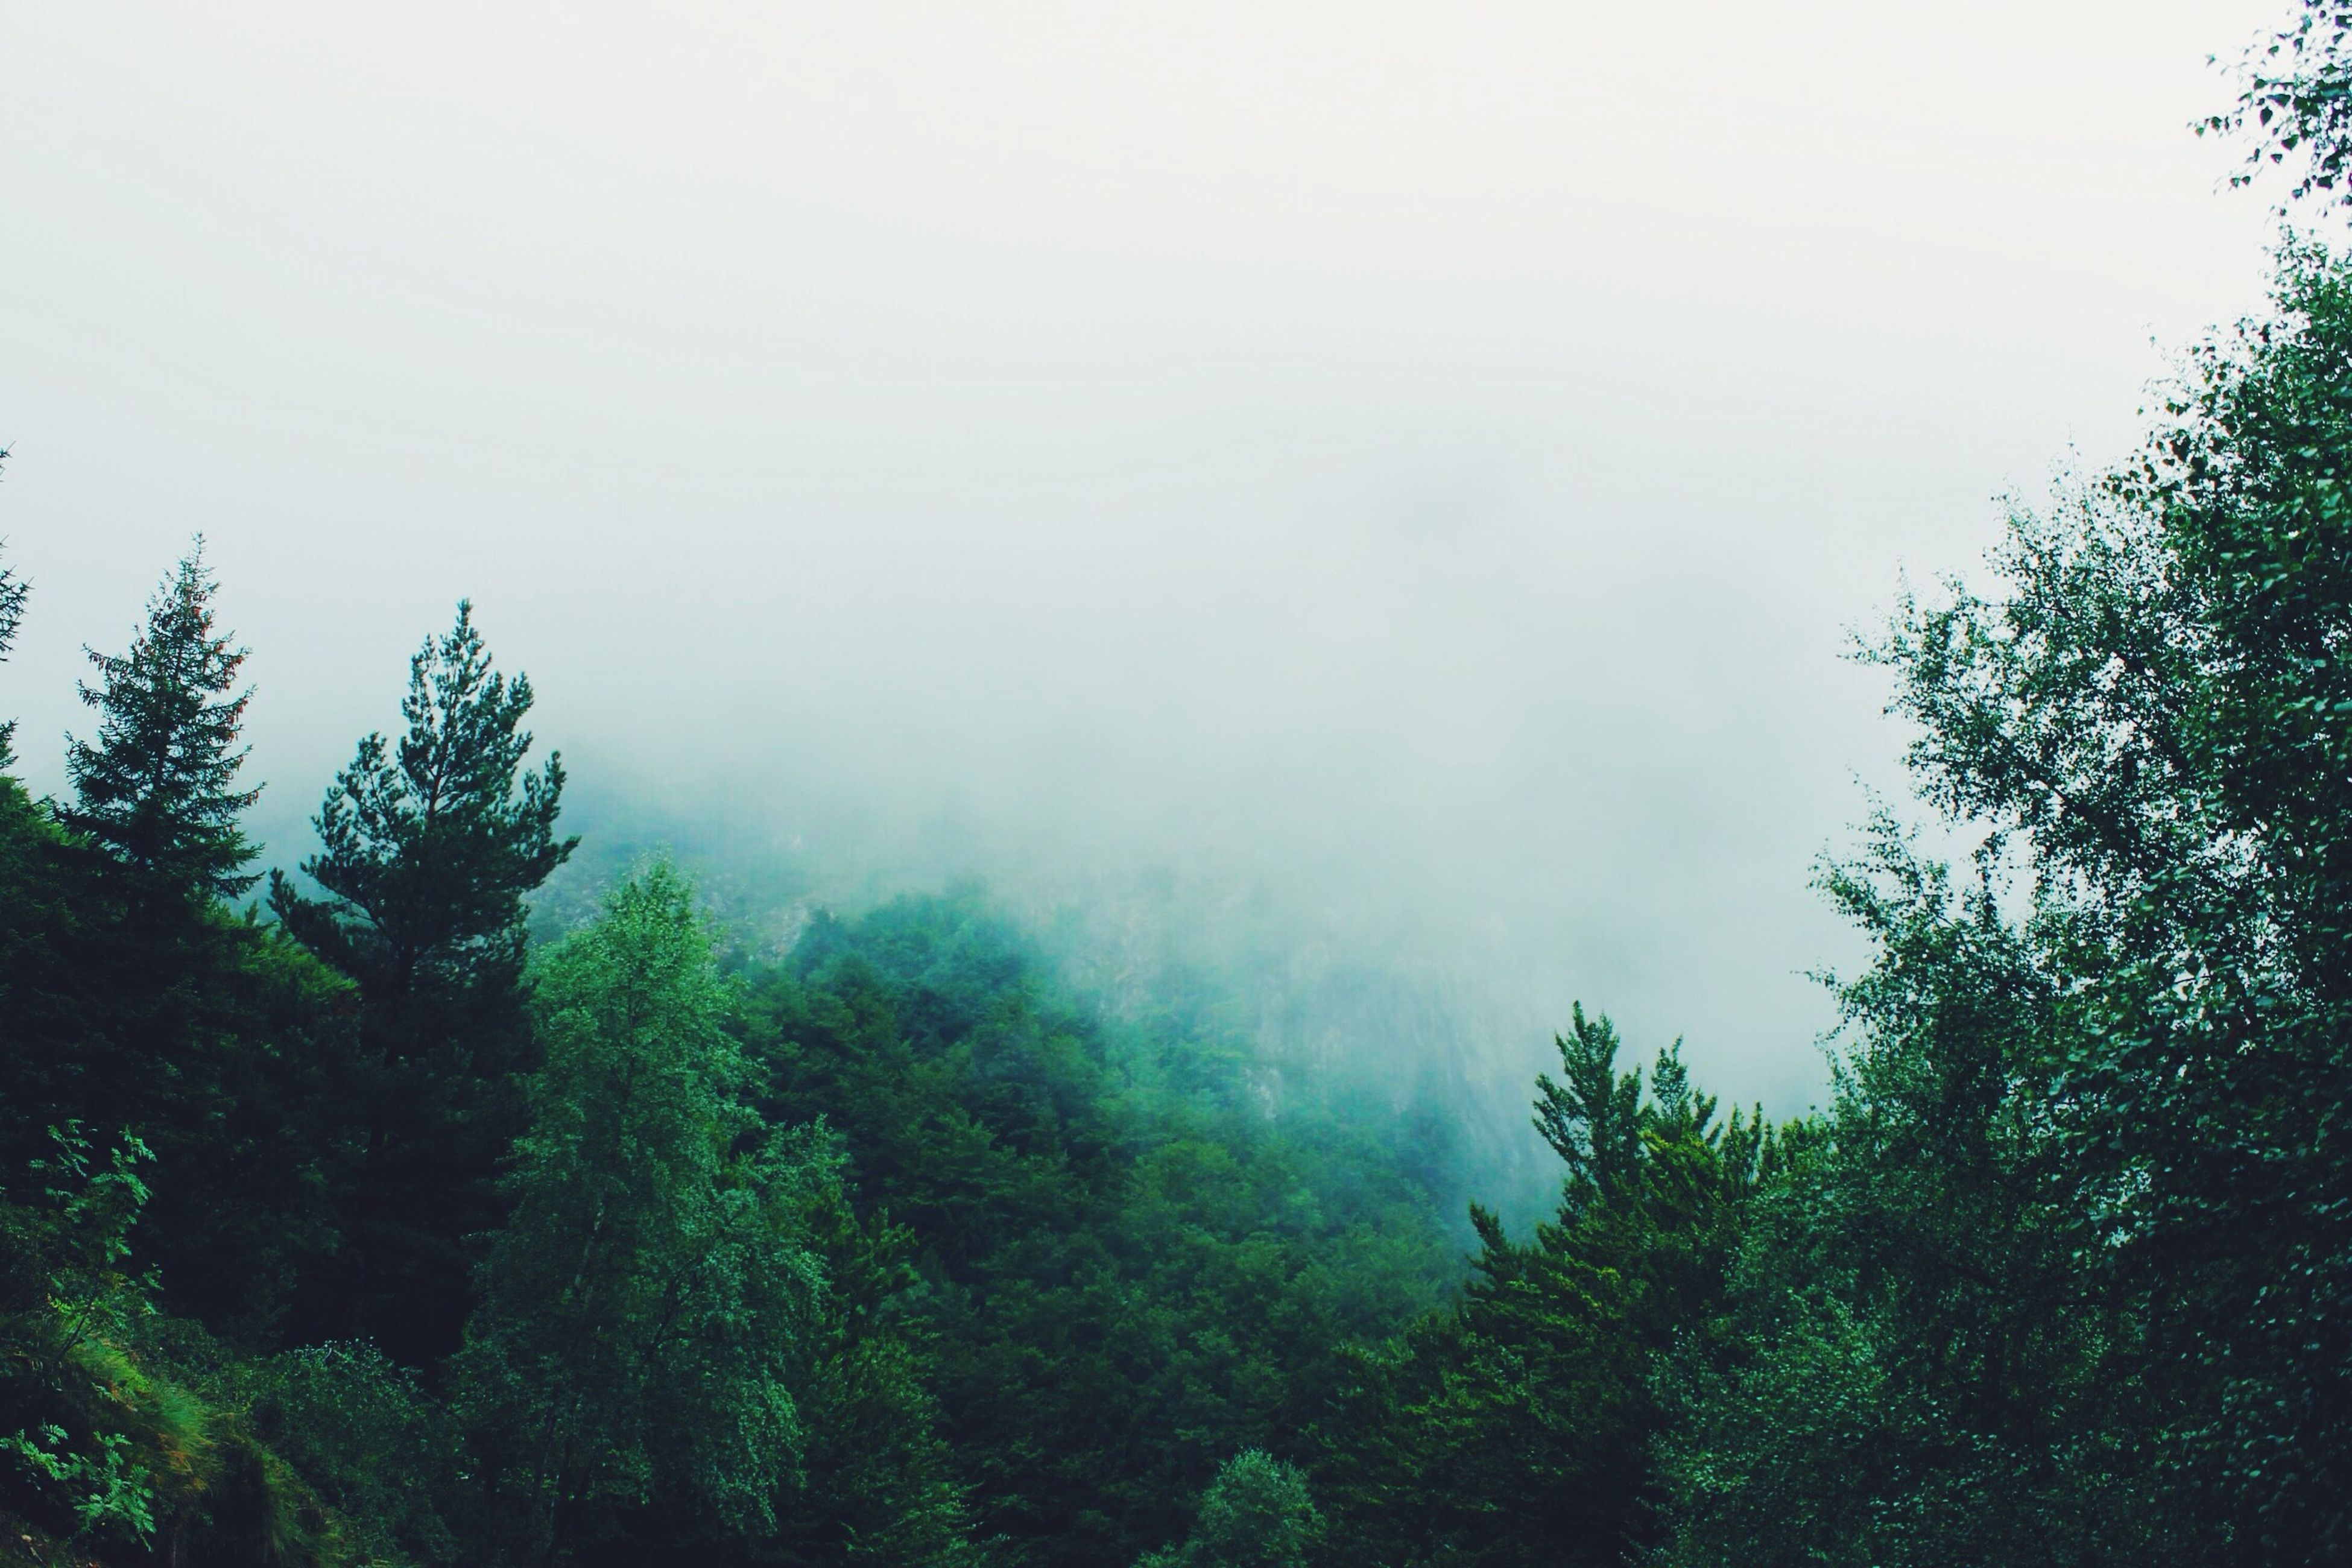 tree, fog, tranquility, tranquil scene, beauty in nature, scenics, foggy, growth, nature, sky, weather, forest, low angle view, idyllic, non-urban scene, copy space, green color, lush foliage, outdoors, day